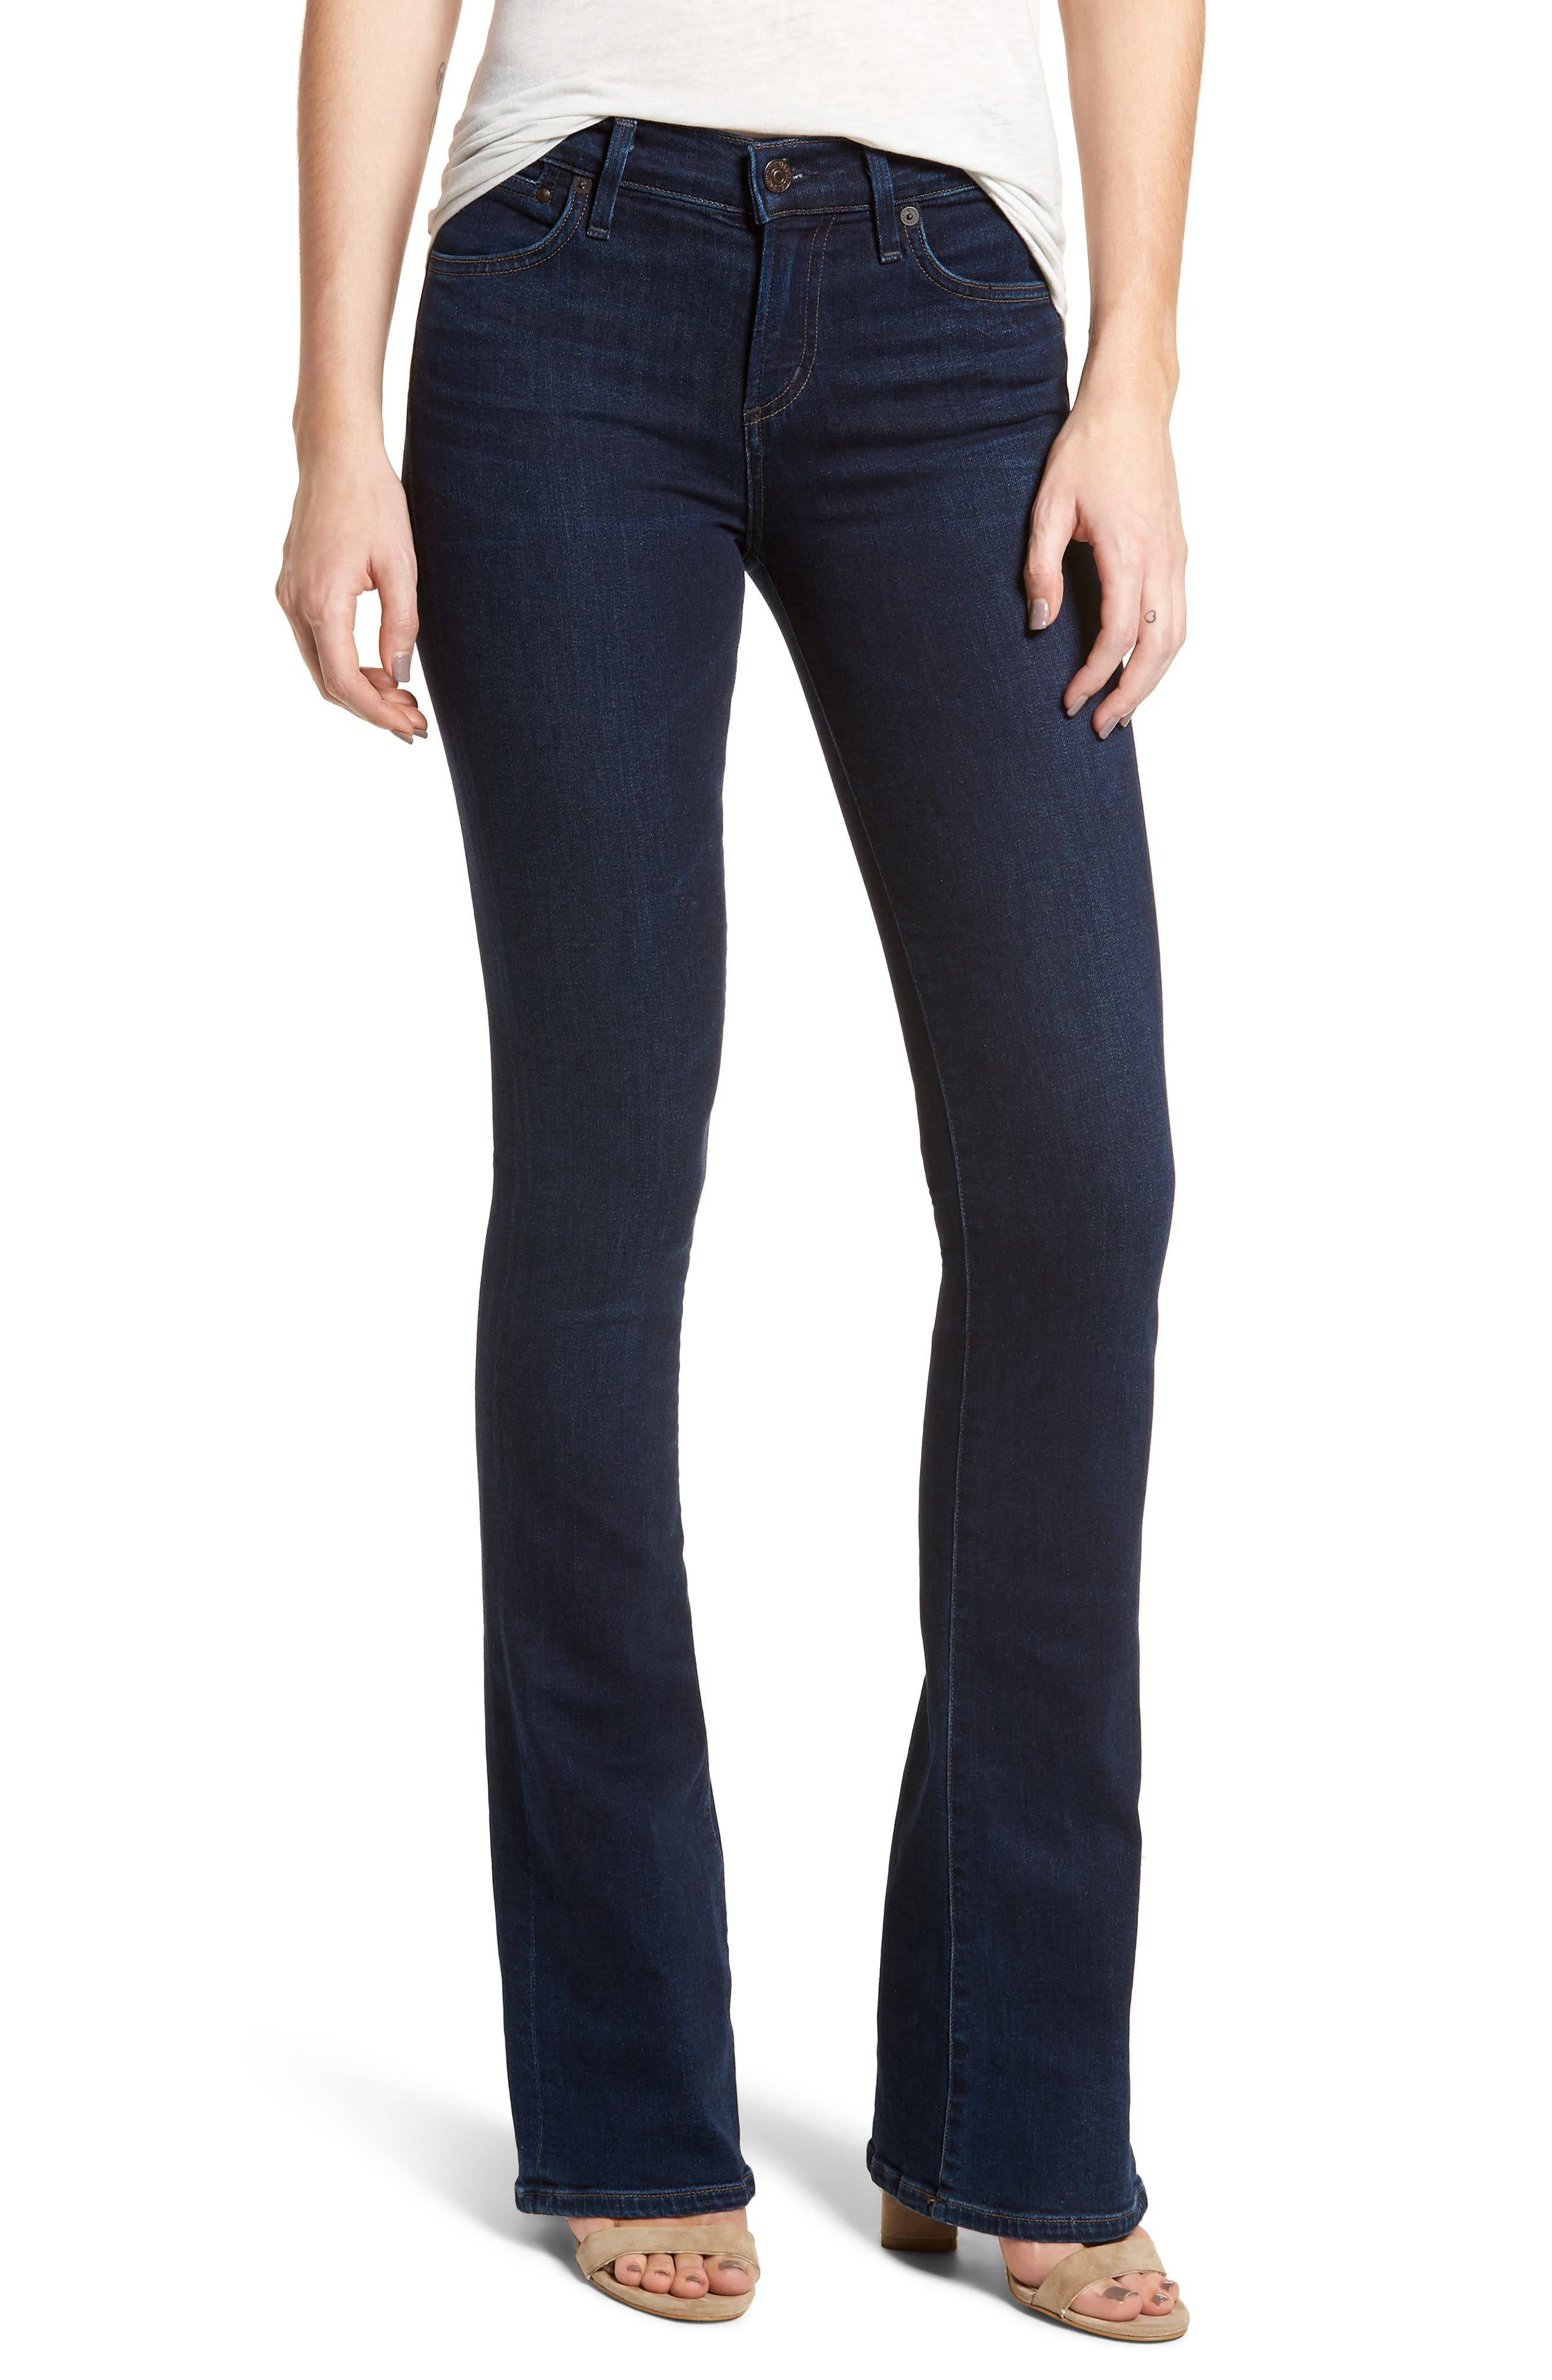 Emannuelle Bootcut Jeans,                         Main,                         color, Galaxy